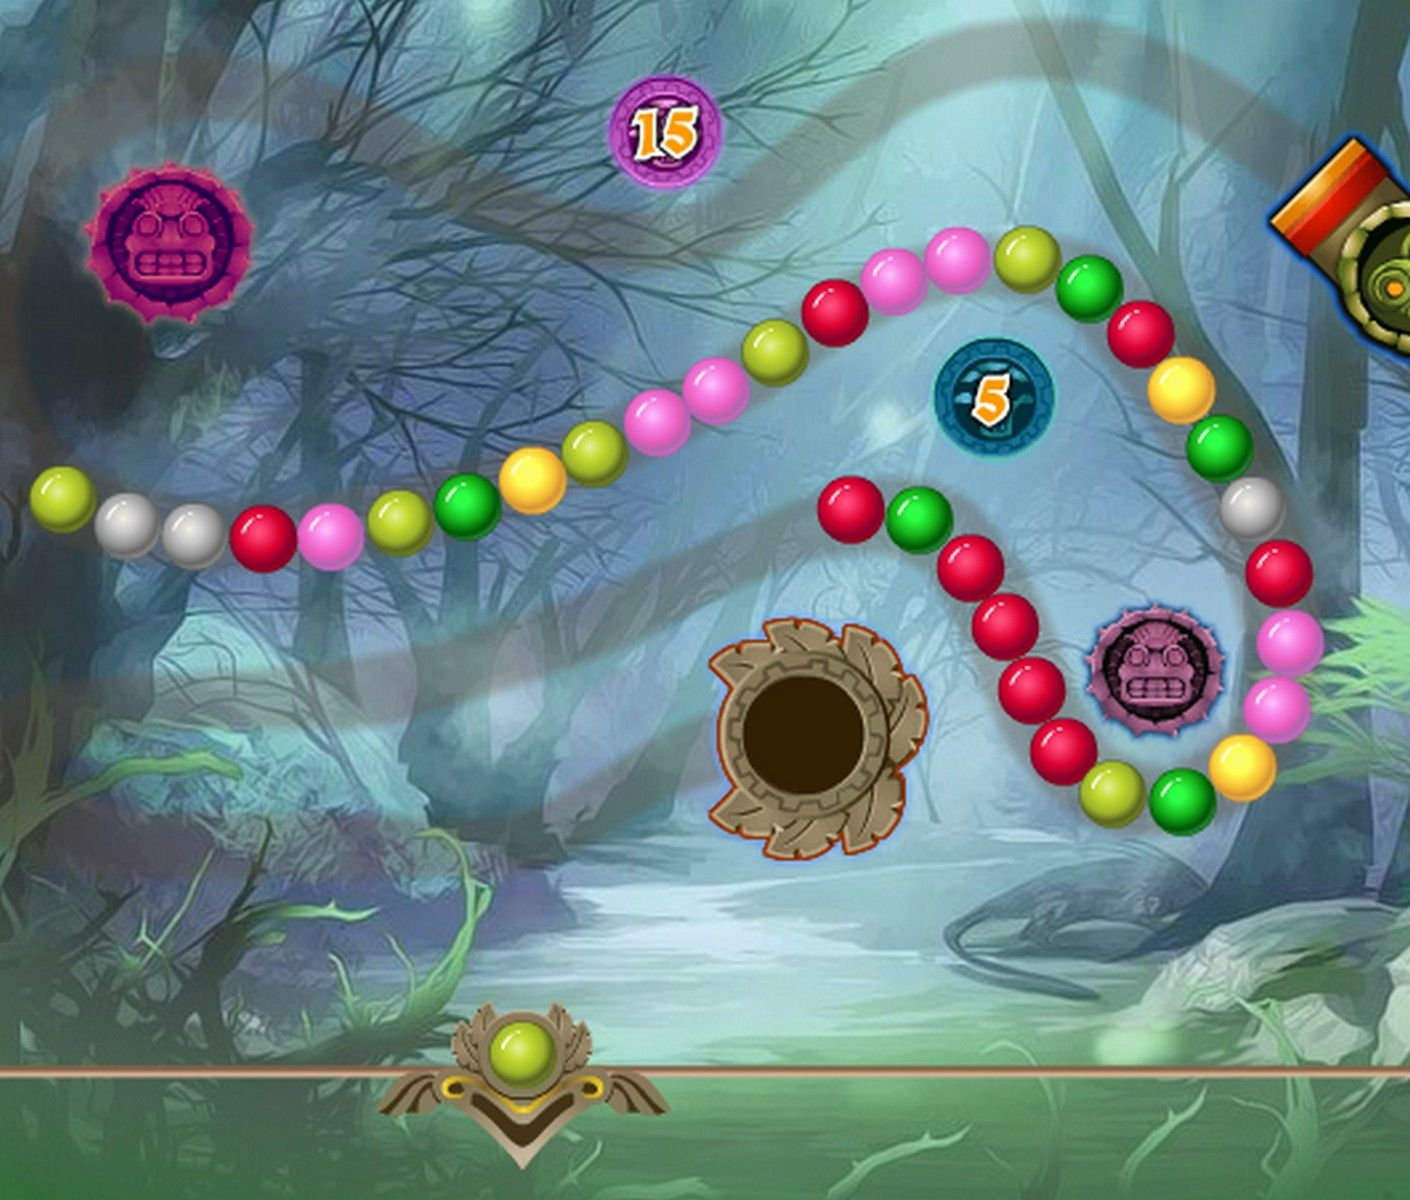 Color zuma game - All New Levels For This Fun And Colorfull Zuma And Marble Popper Game Shoot Marbles Into The Chain And Connect 3 Or More Of The Same Marbles